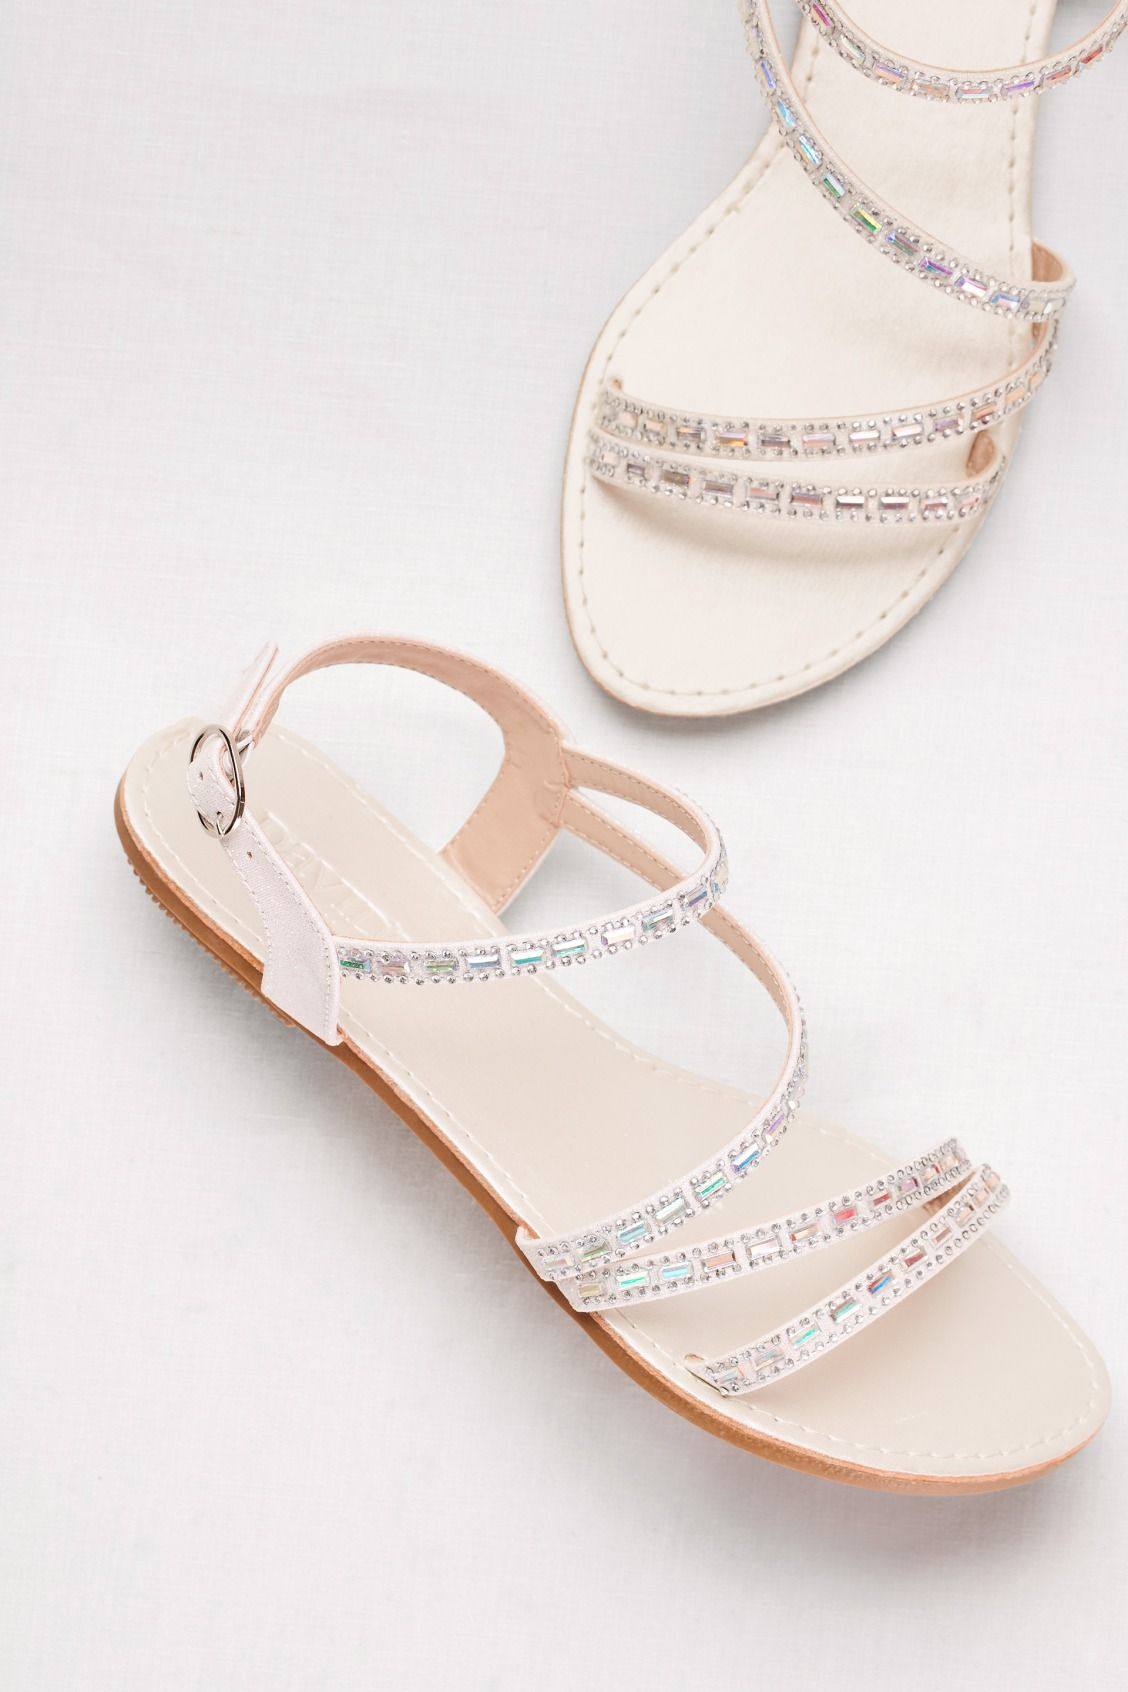 5ad31a0ed A pretty prom flat sandal for a stylish night of dancing ...